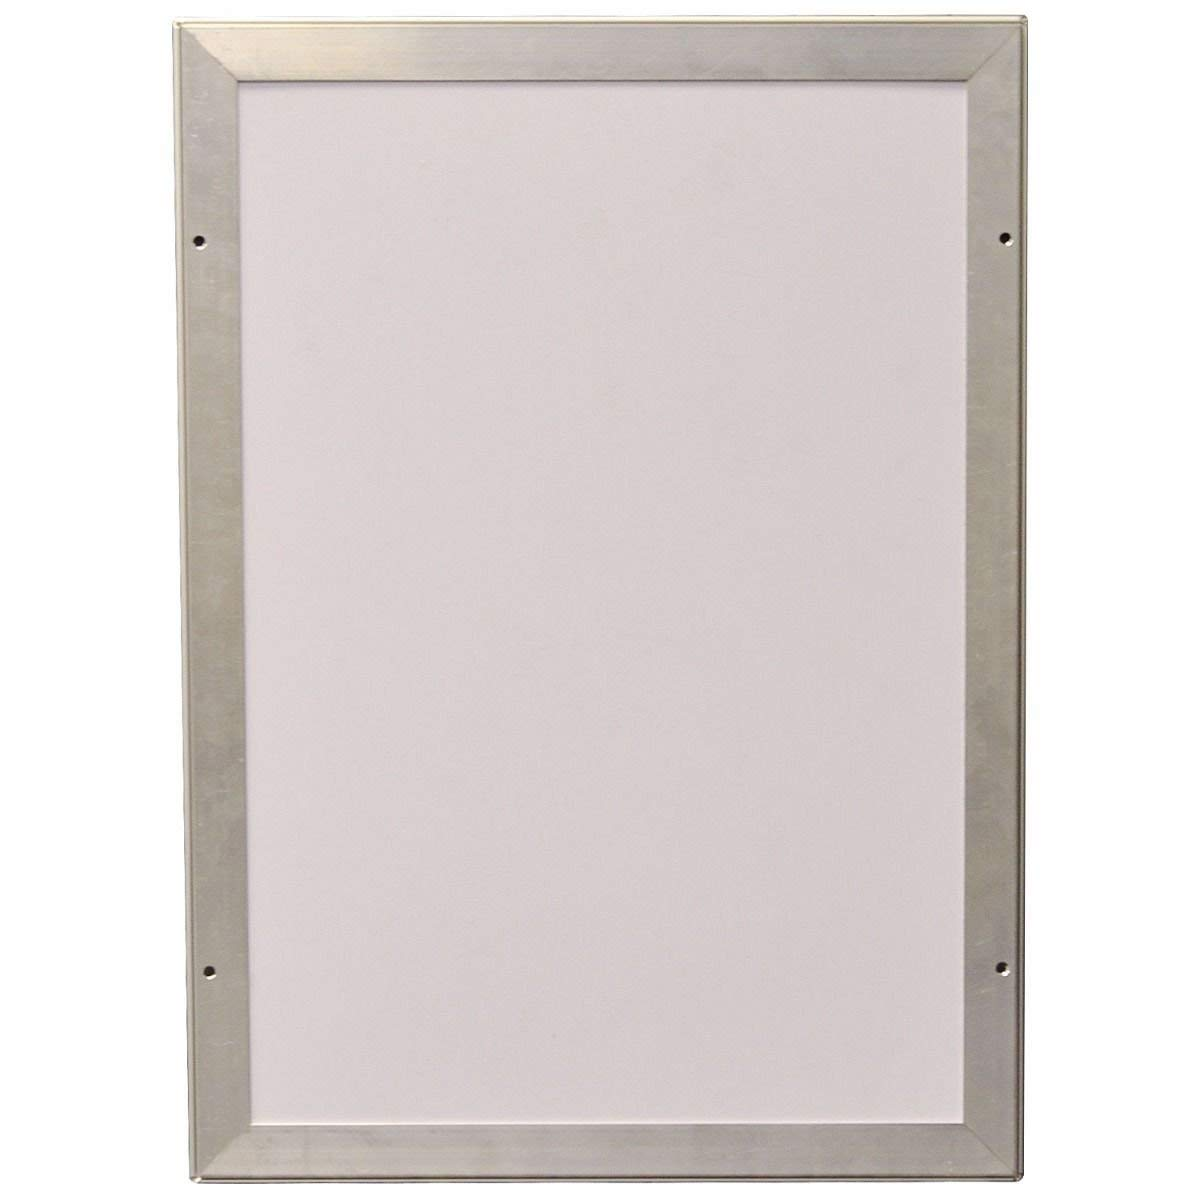 Aluminium Snap Frame Point Of Sale POS Wall Display /(A1/) Expressco